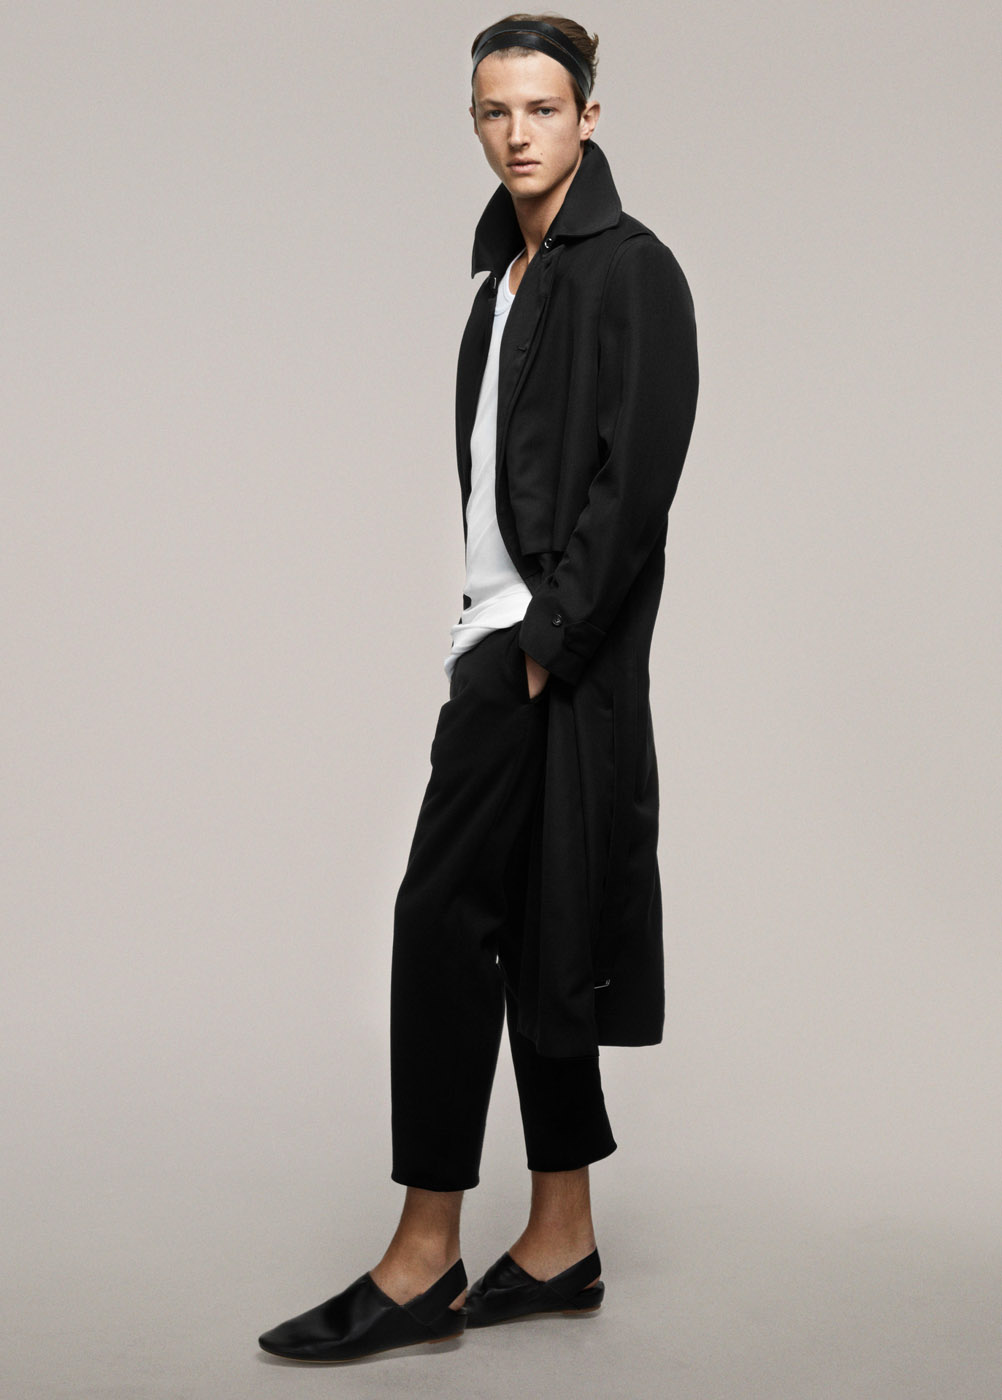 H&M Studio Spring Summer 2017 collection (19)